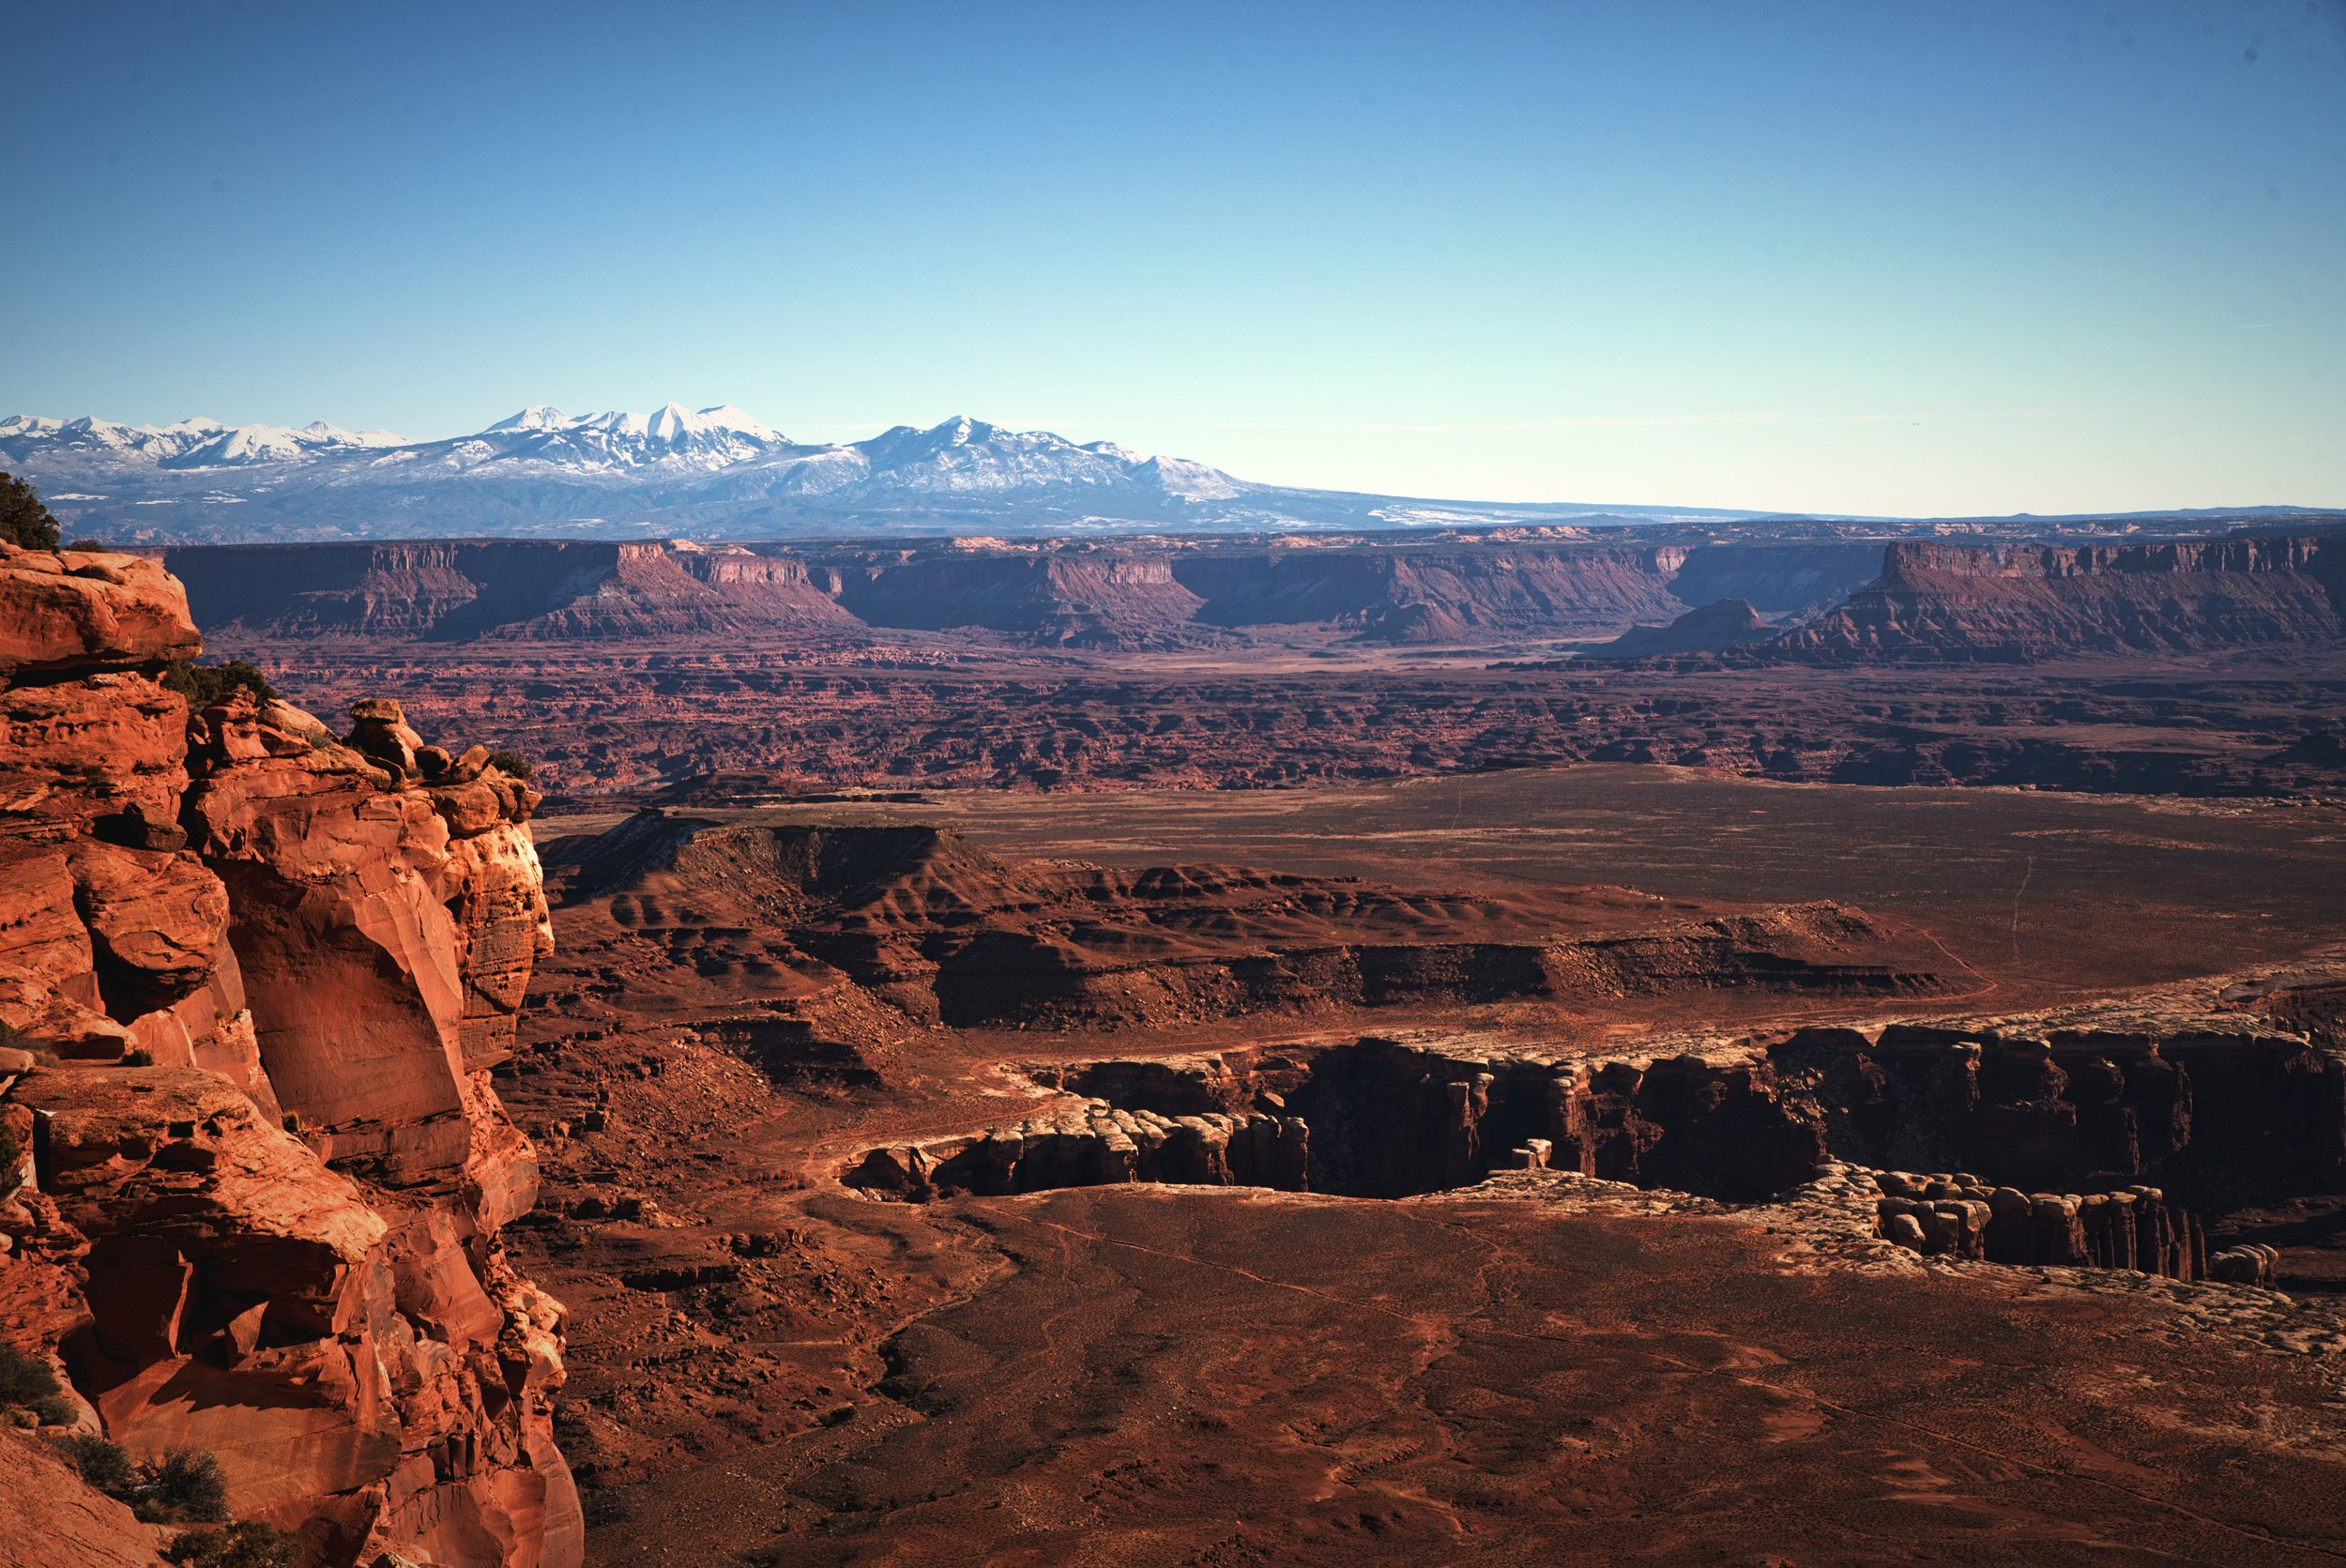 """Between here and there and me and the mountains it's the canyon wilderness, the hoodoo land of spire and pillar and pinnacle where no man lives, and where the river flows, unseen, through the blue-black trenches in the rock."" -Edward Abbey, writing about Canyonlands."